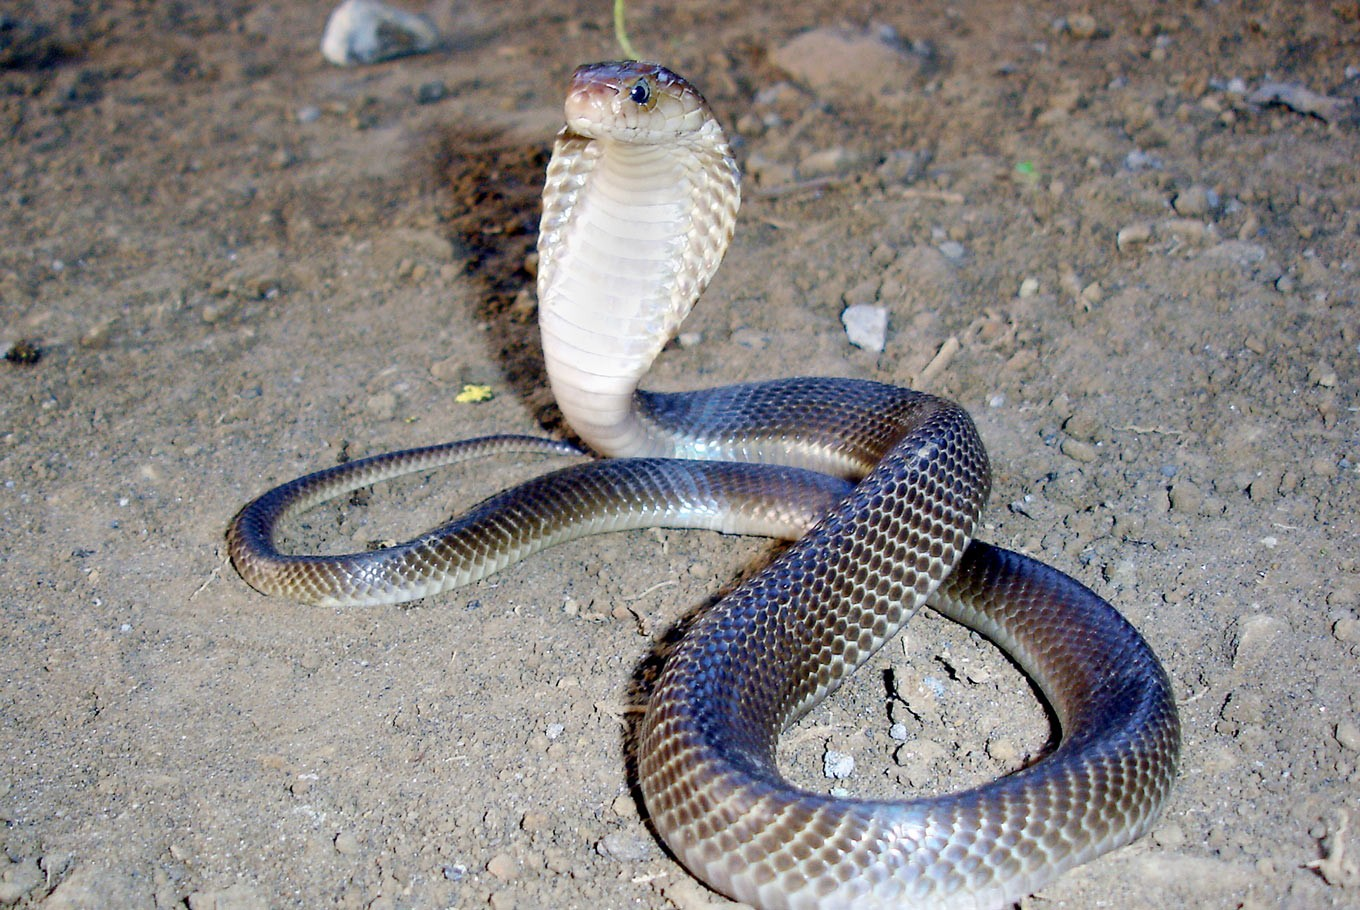 Slithering situation: Cobras captured after terrorizing regions